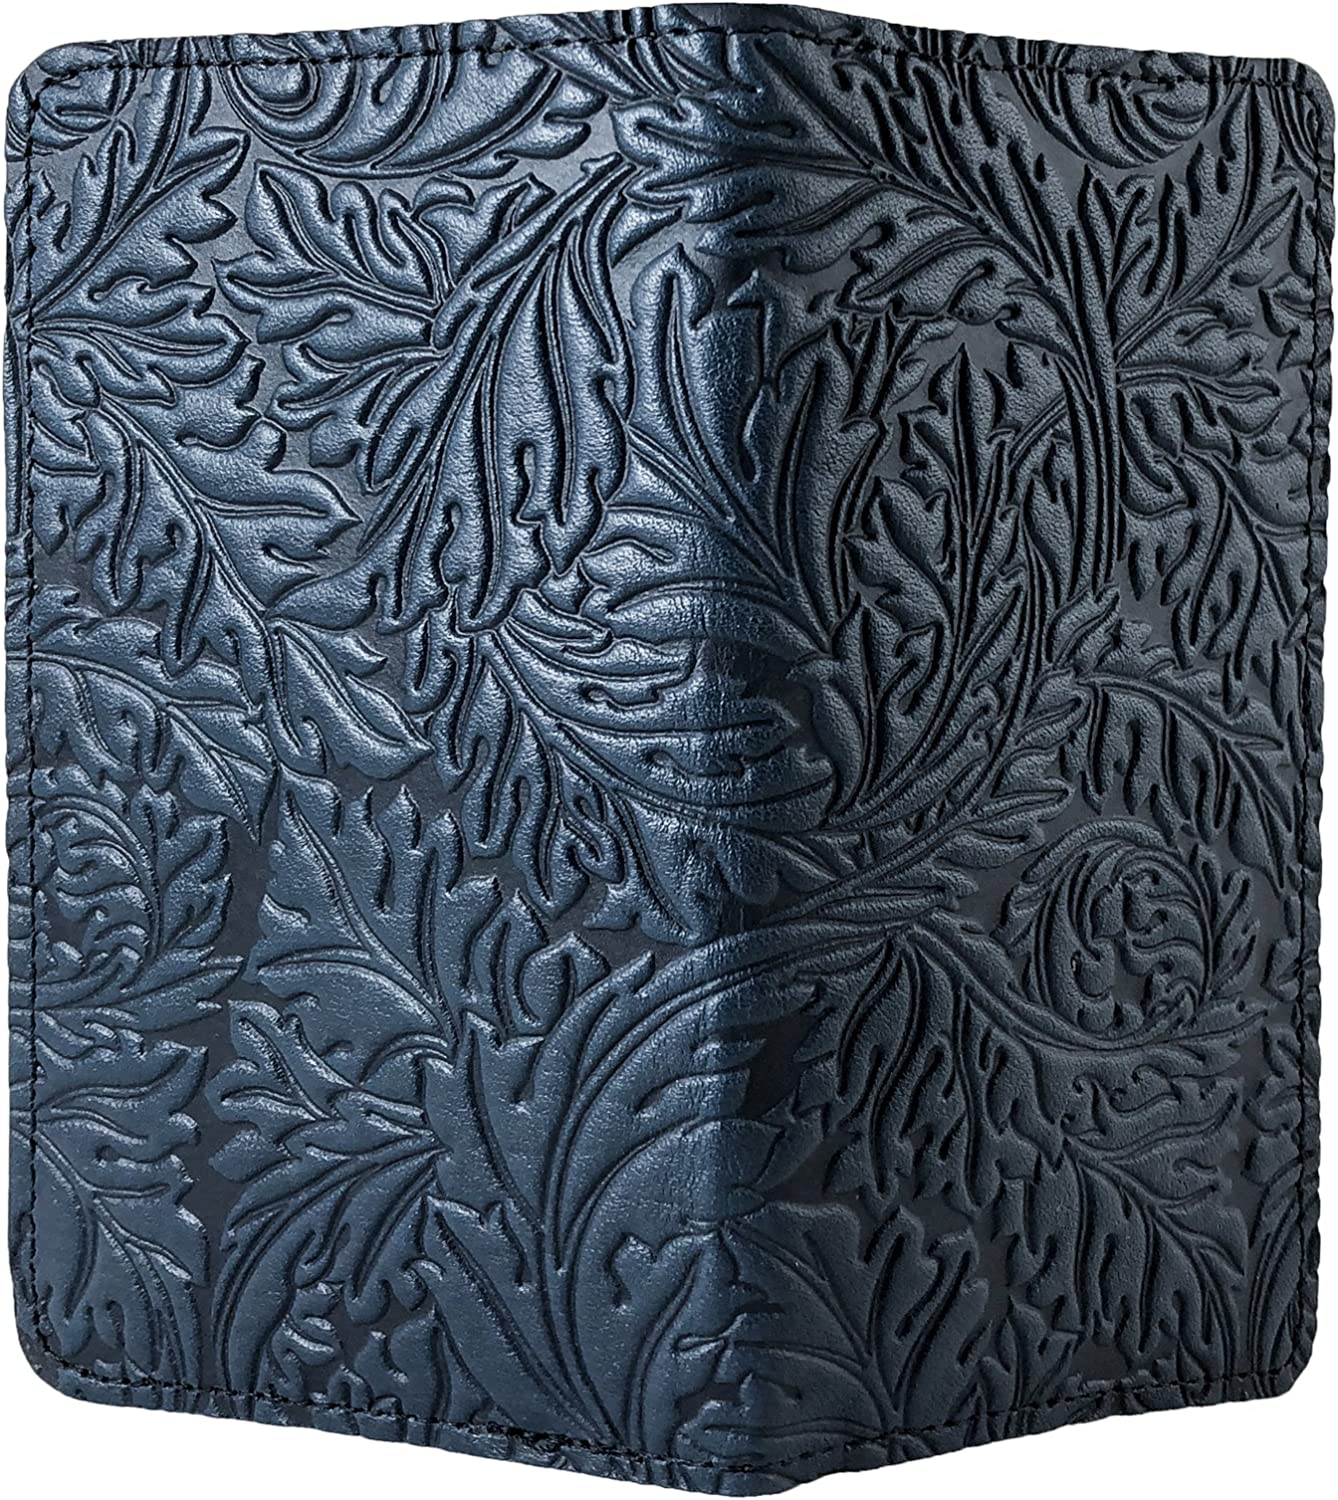 Oberon Design Acanthus Leaf Embossed Genuine Leather Checkbook Cover, 3.5x6.5 Inches, Navy Blue, Made in the USA